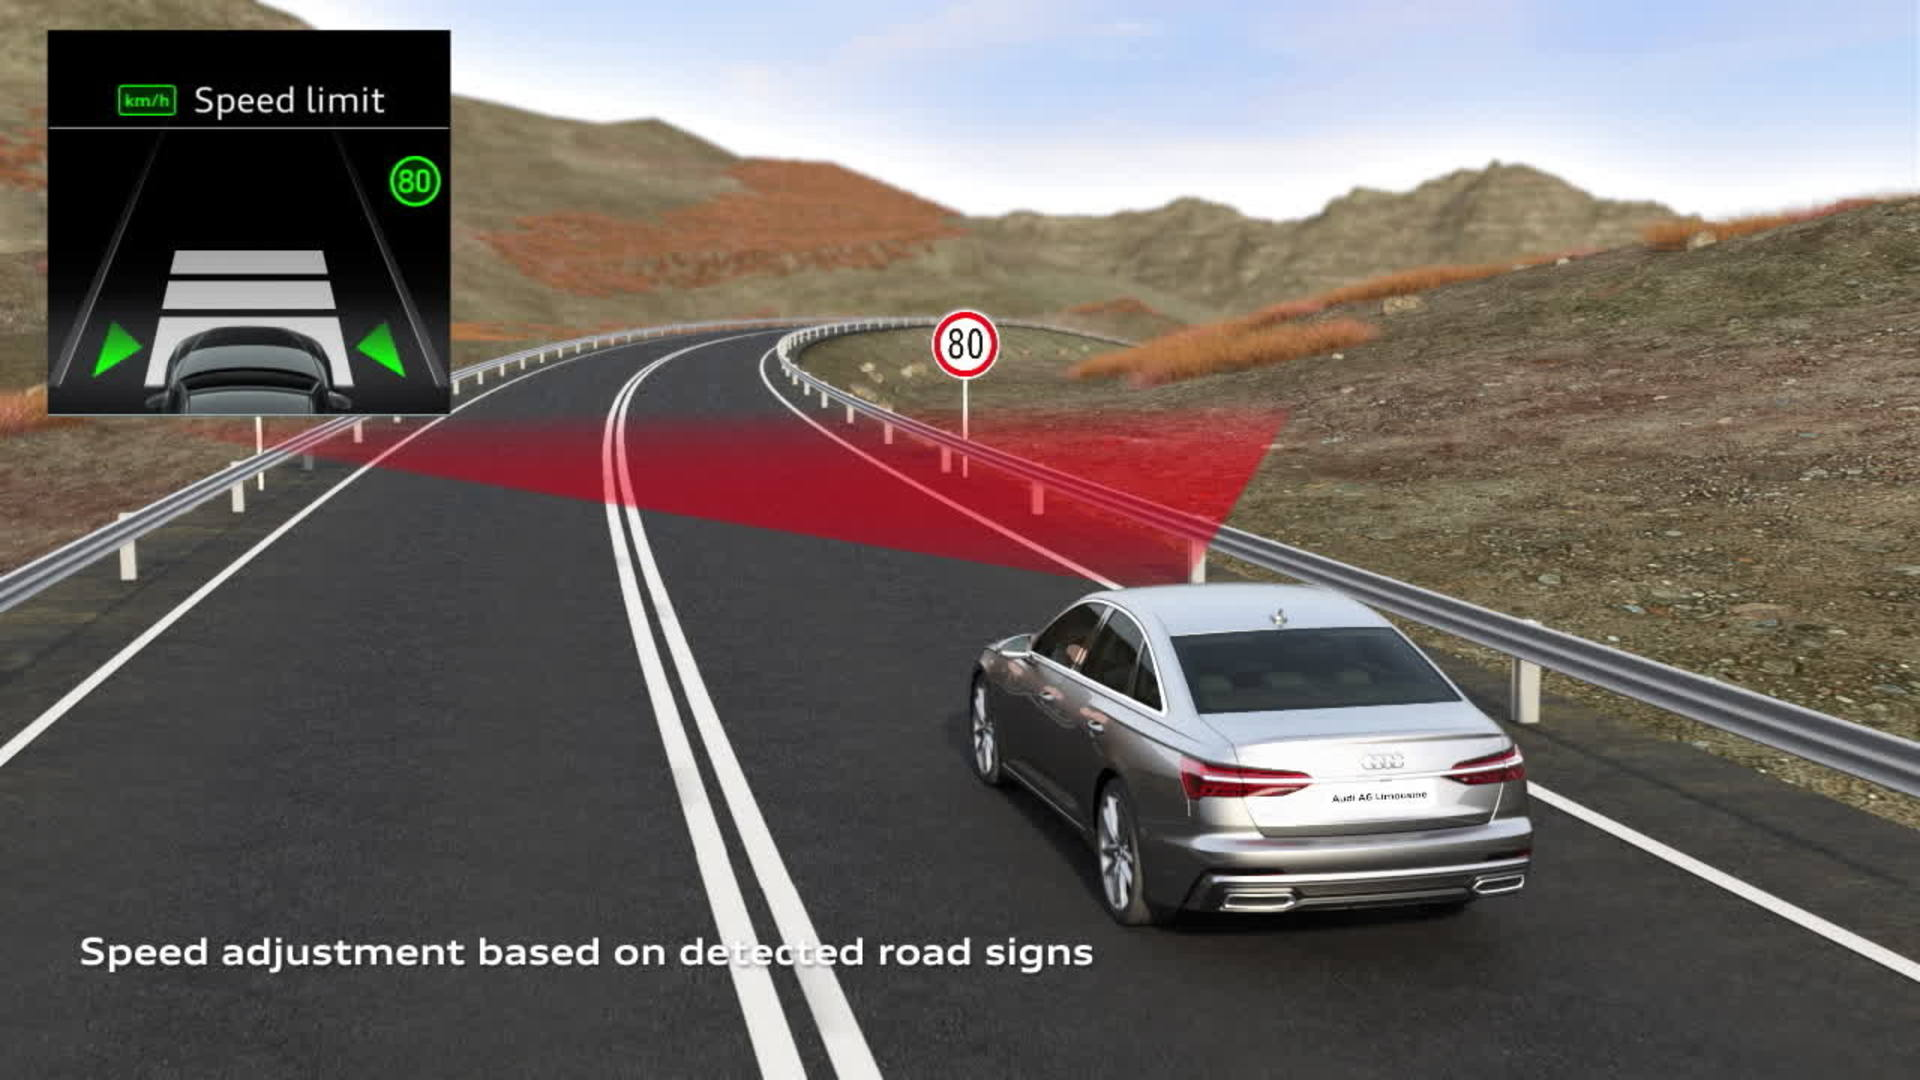 Animation Audi A6 Adaptive cruise assist